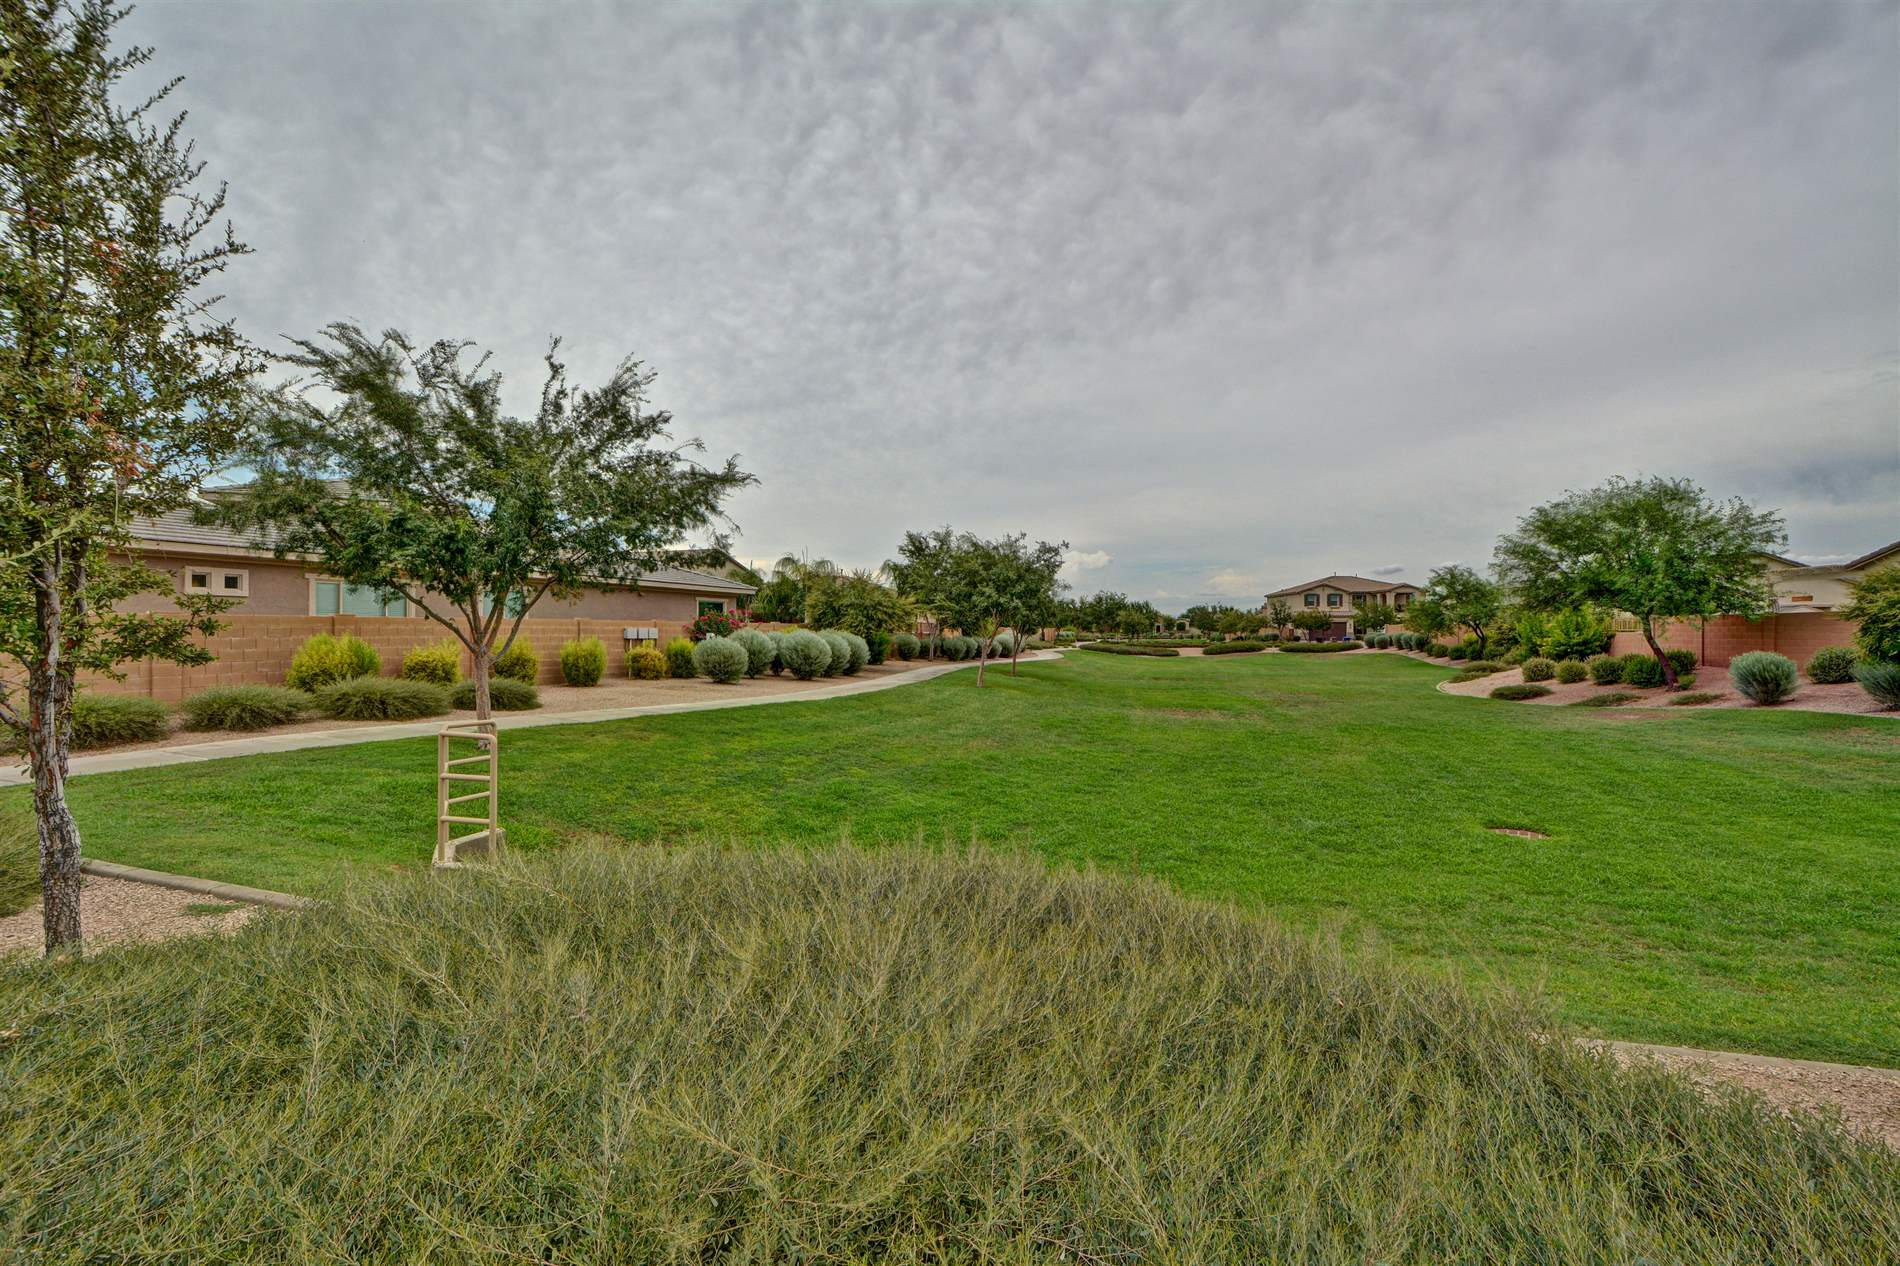 21388 E Pecan Ln, Queen Creek, AZ 85142